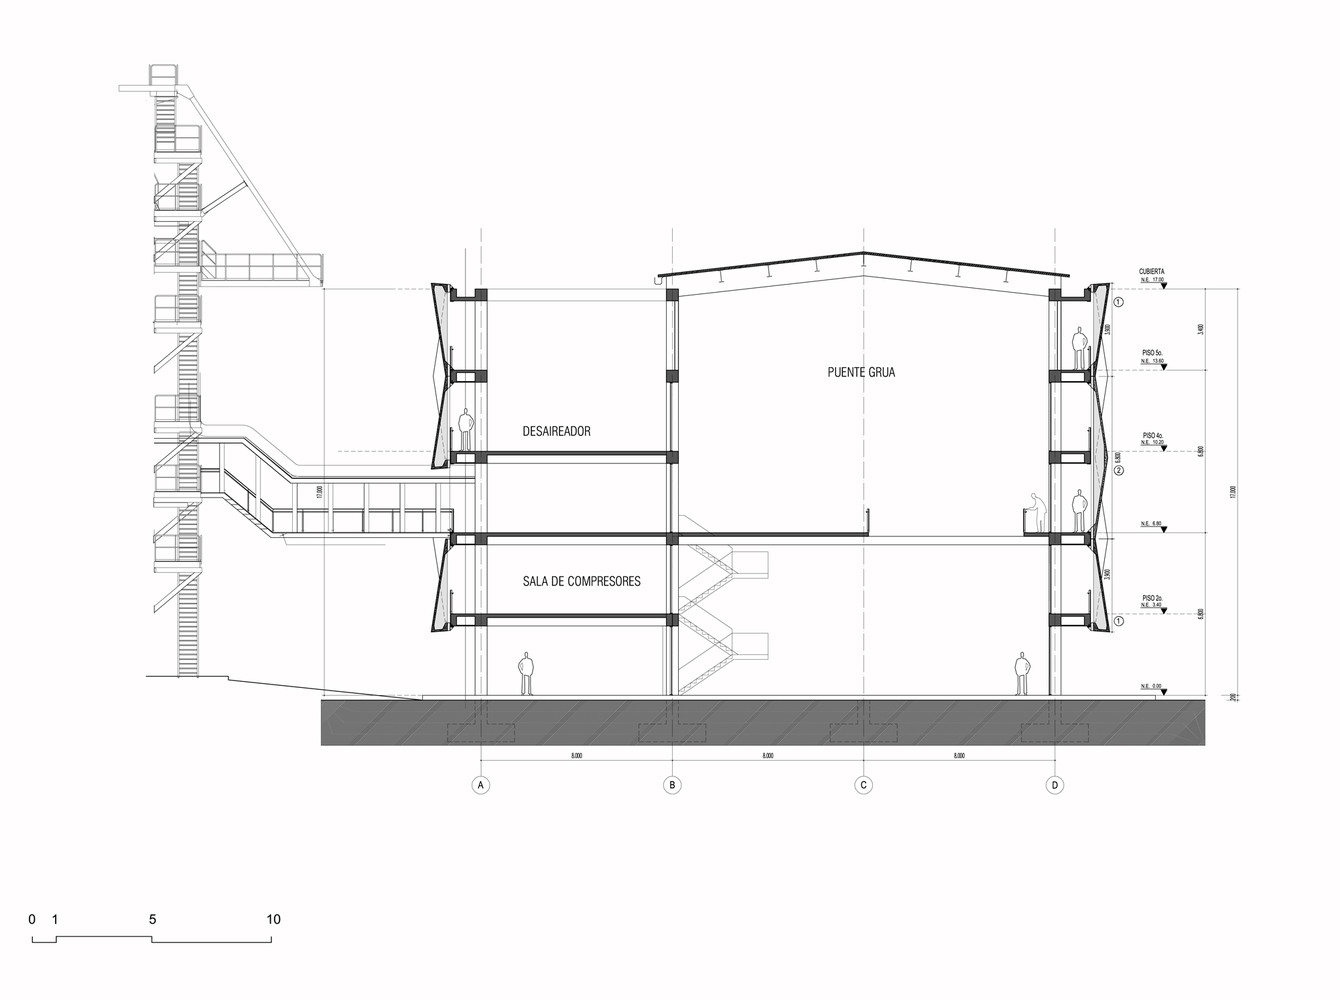 medium resolution of argos building for an electrical generator at a cement factory mgp arquitectura y urbanismo